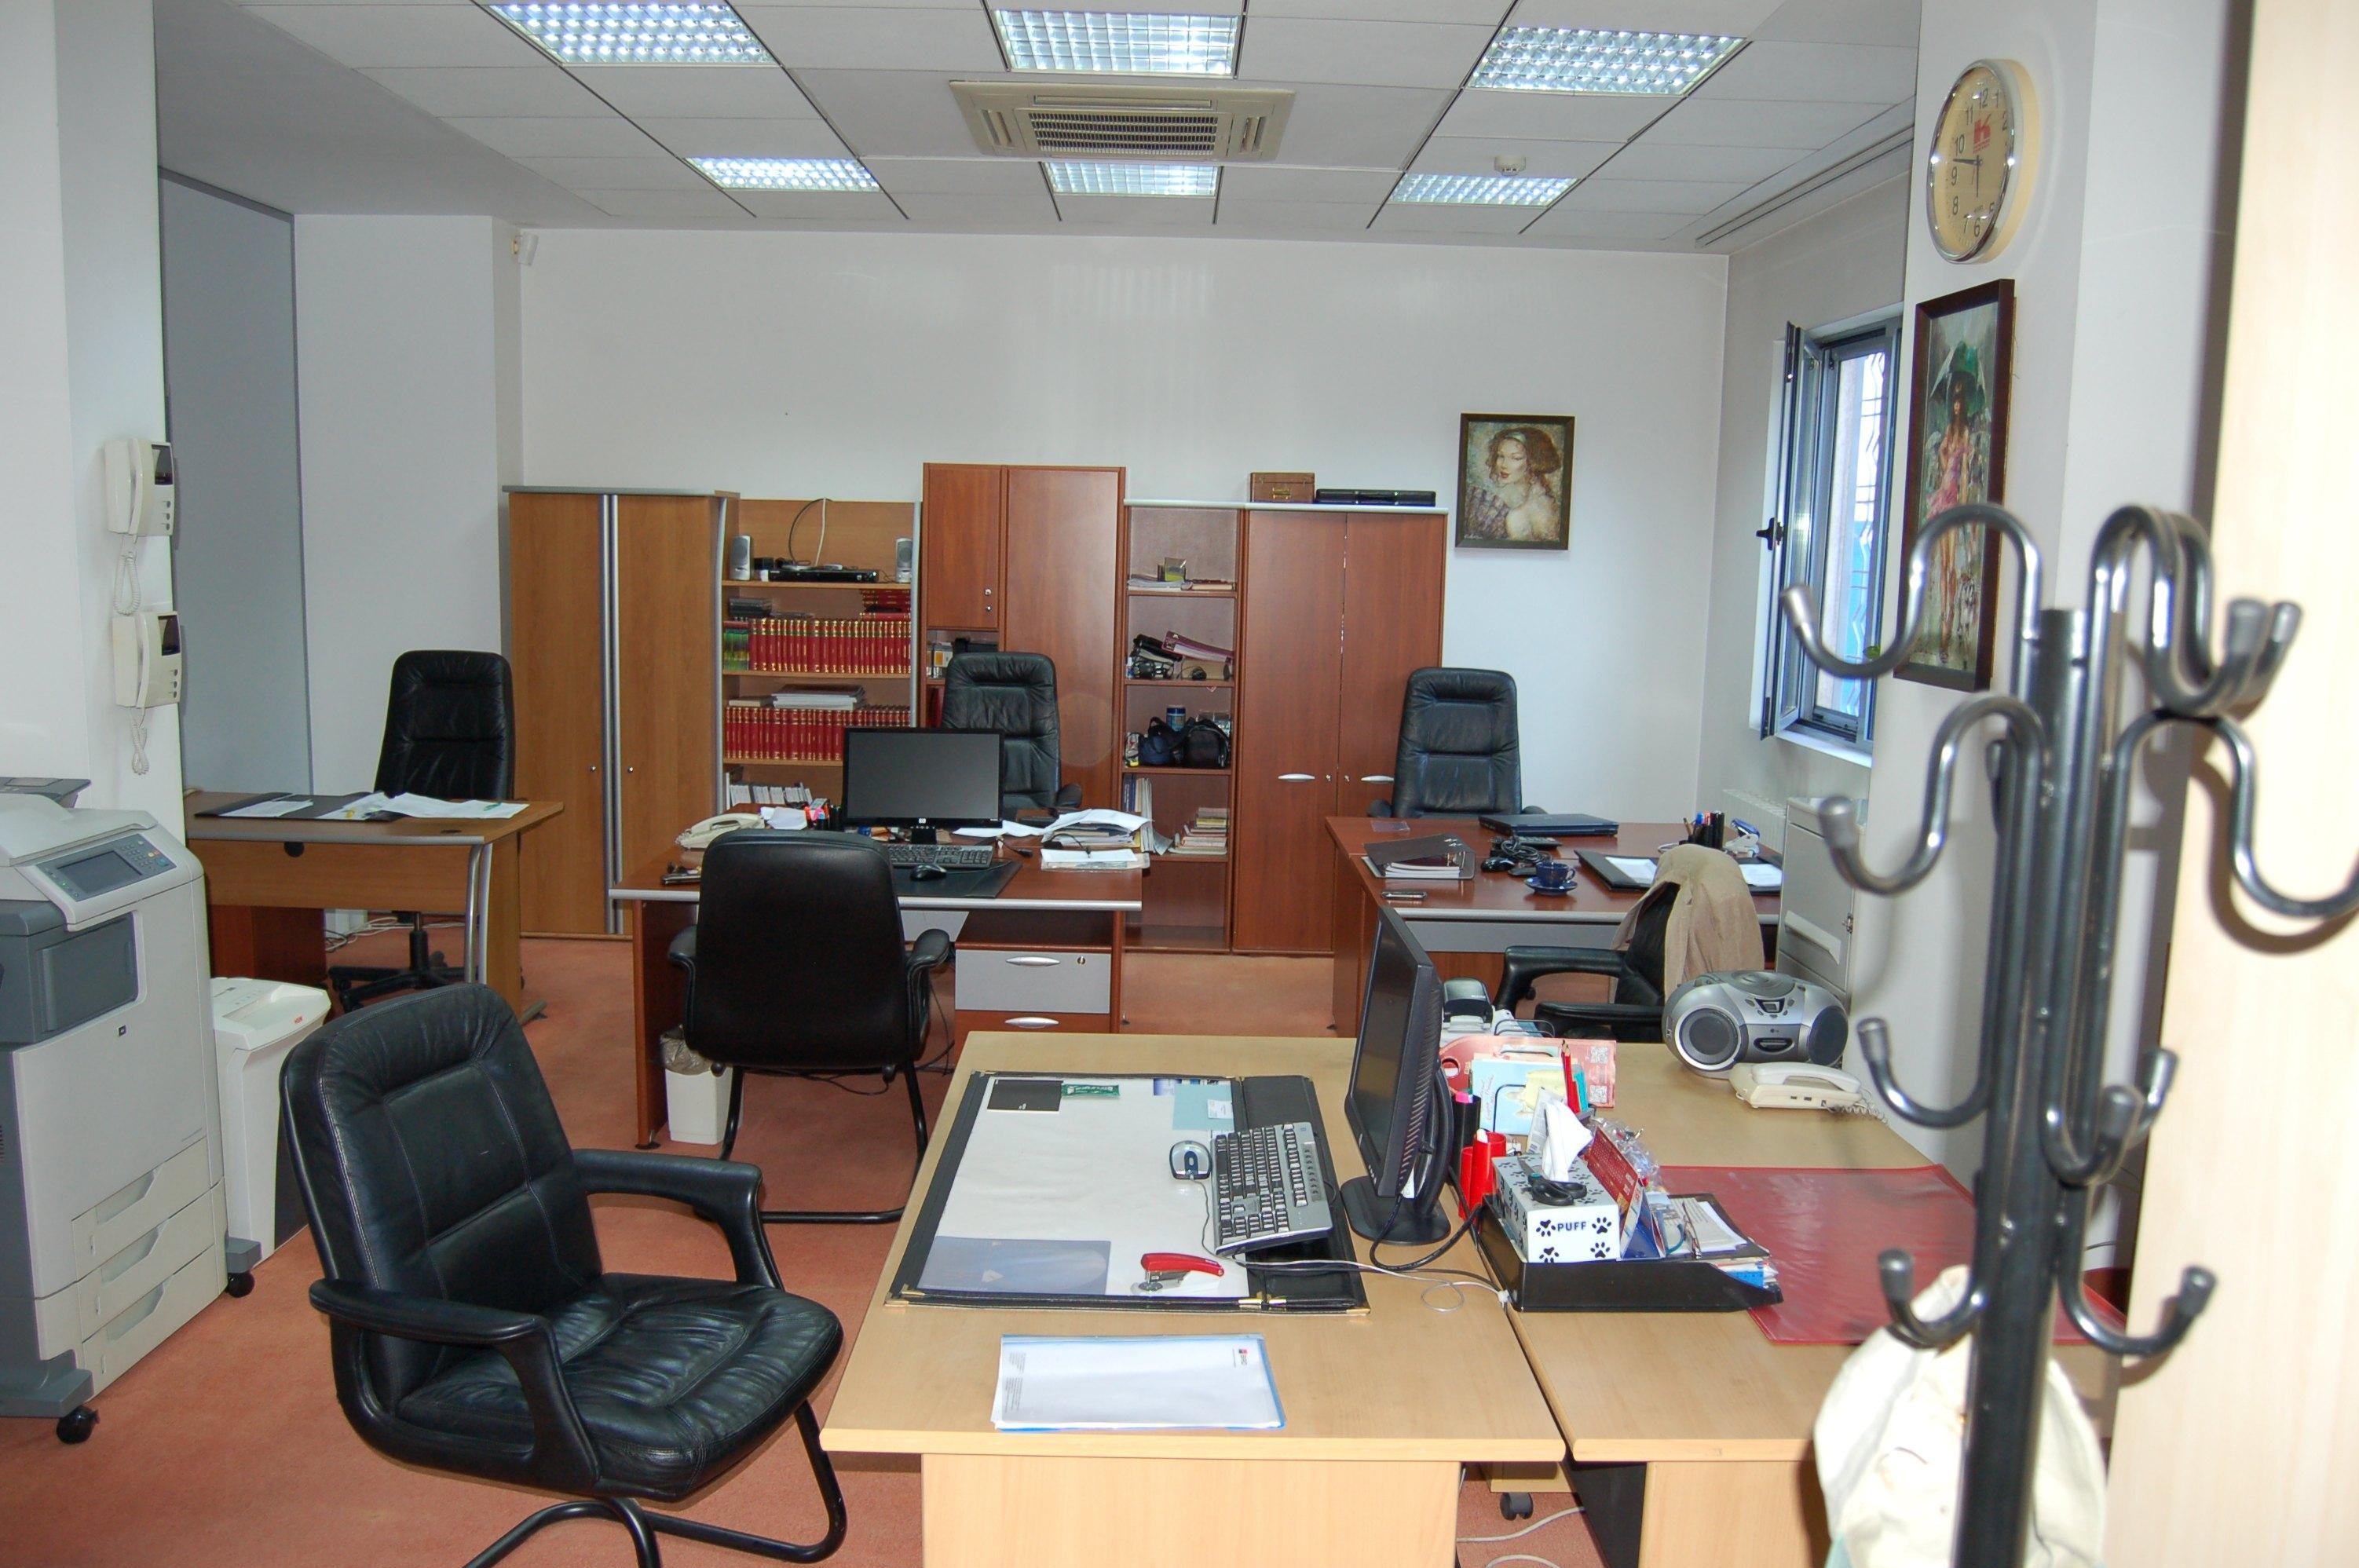 How a clean office helps clients and employees alike for Zerorez hardwood floors